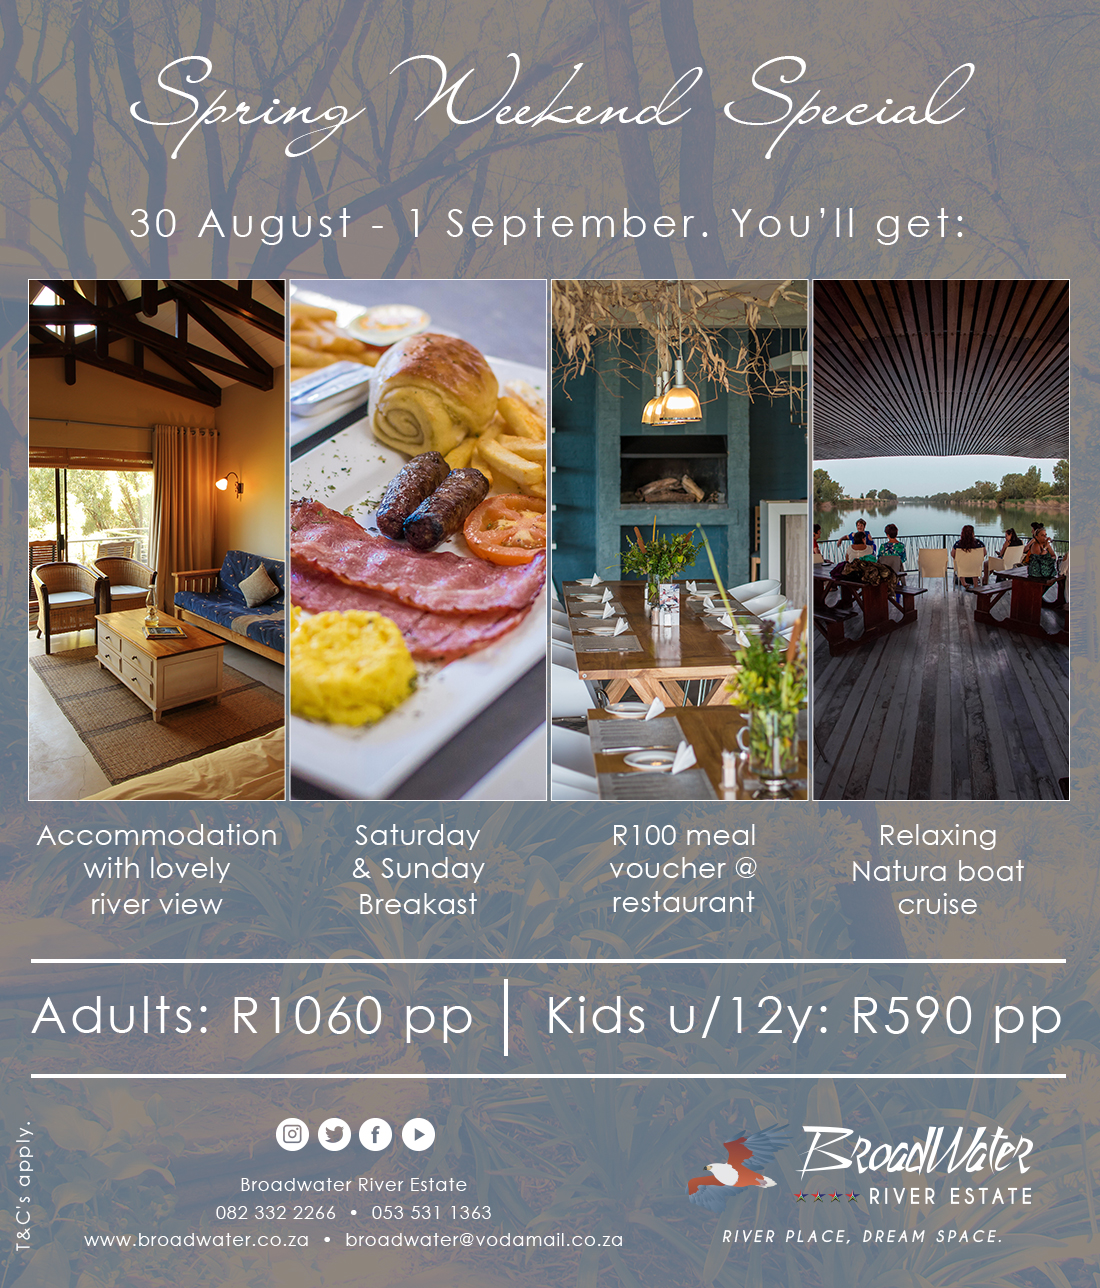 spring weekend special accommodation, breakfast, voucher and boat cruise